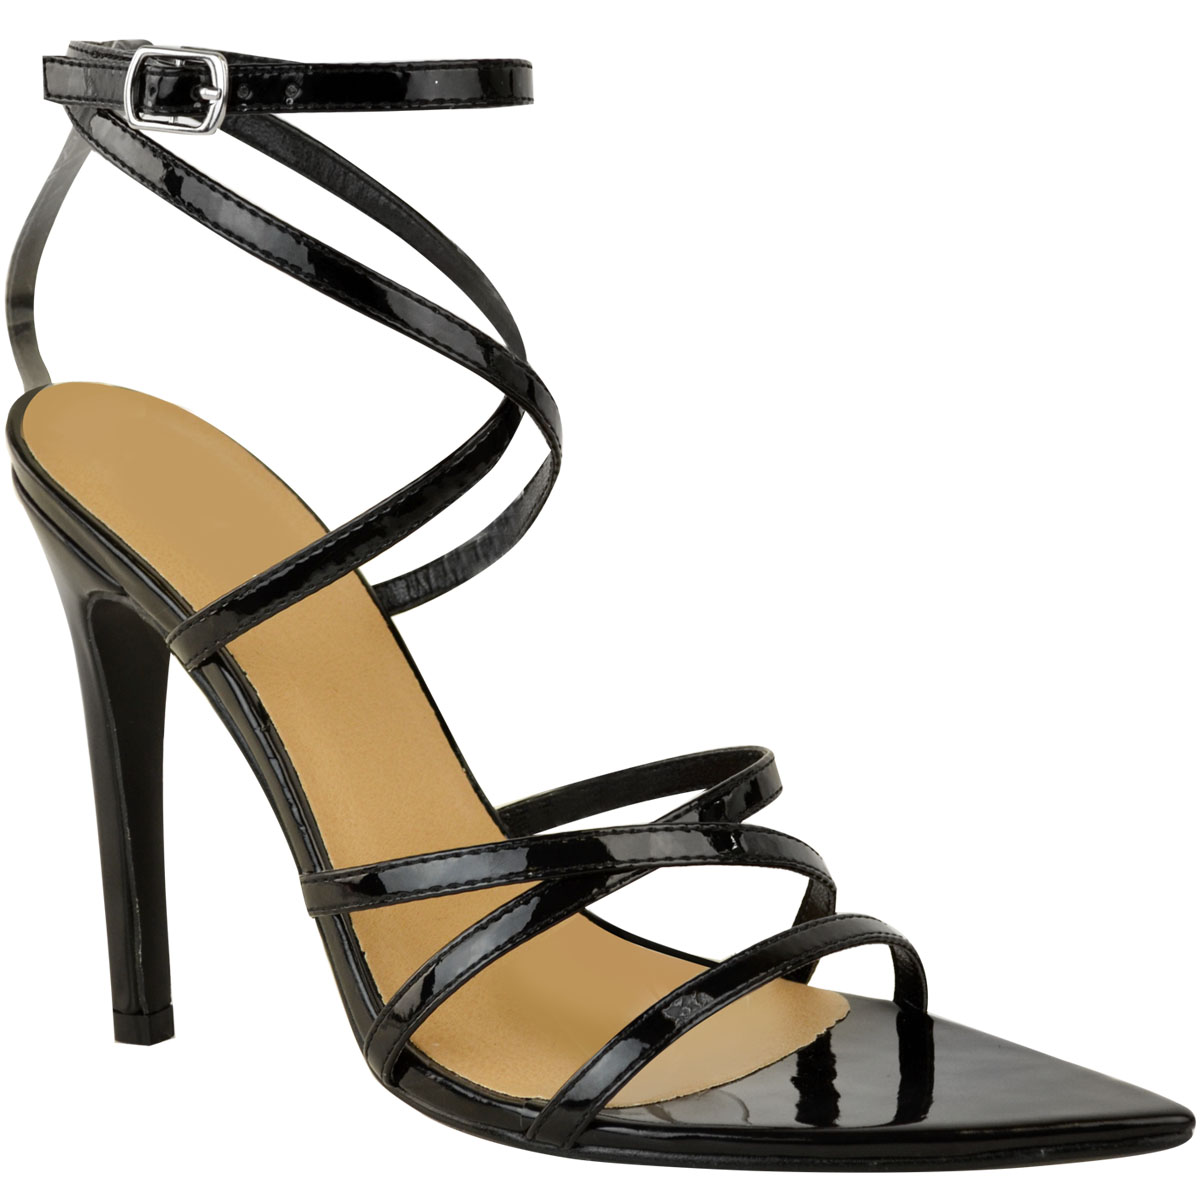 Womens-Ladies-Pointed-Barely-There-High-Heels-Sandals-Strappy-Black-Patent-Size thumbnail 3